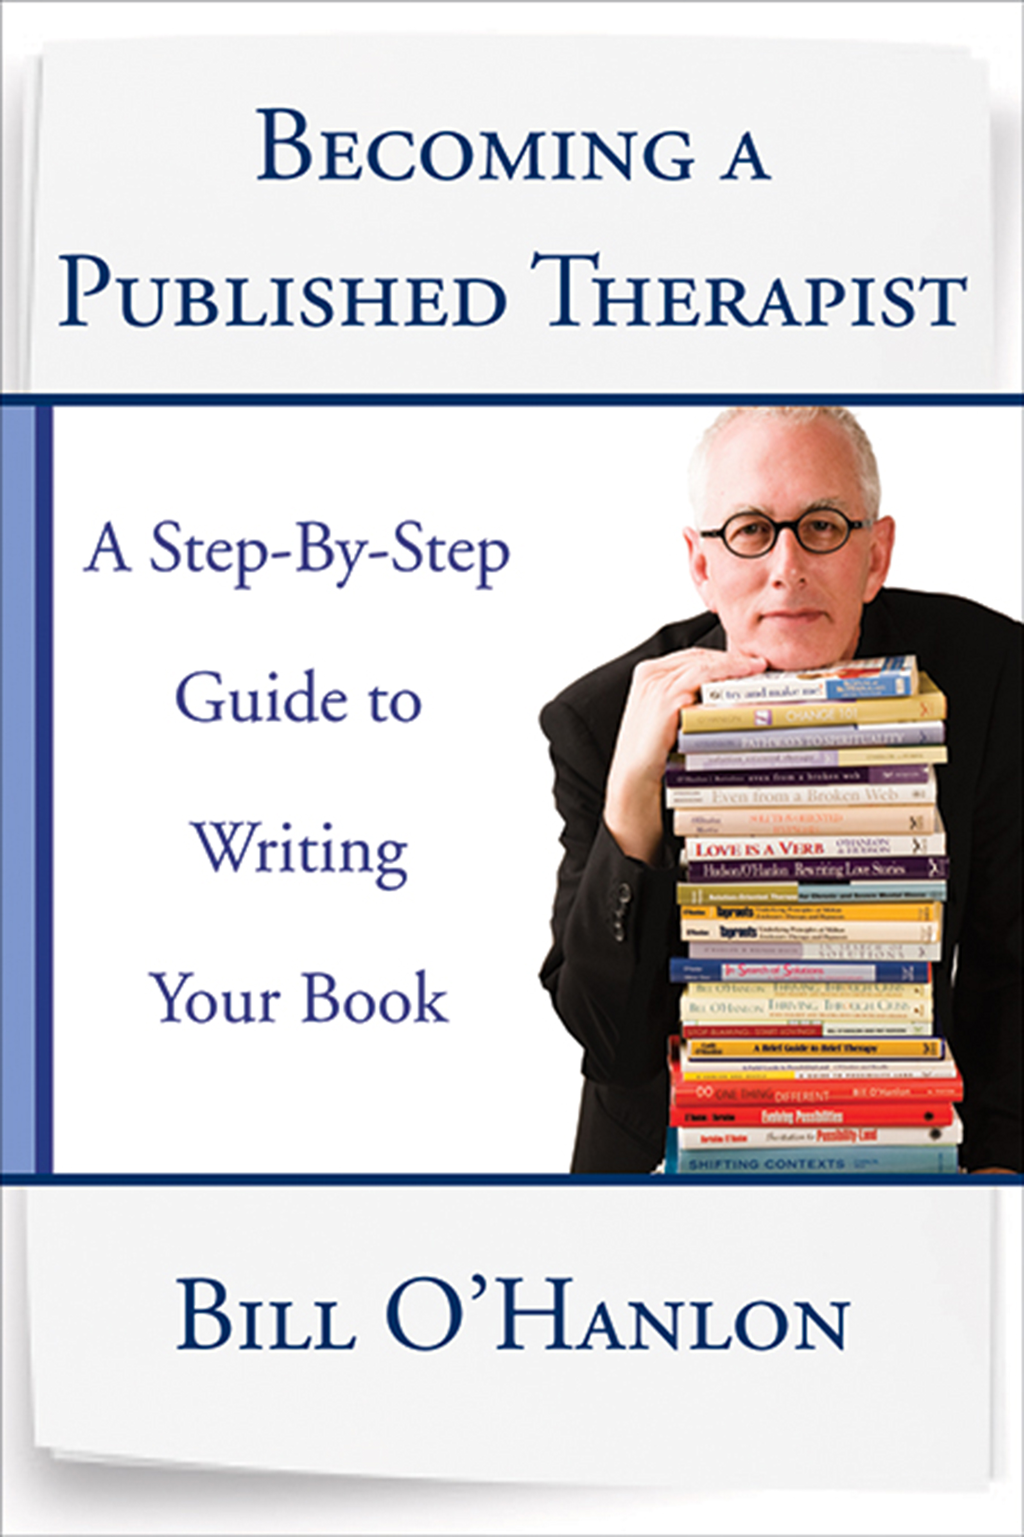 Becoming a Published Therapist: A Step-by-Step Guide to Writing Your Book By: Bill O'Hanlon